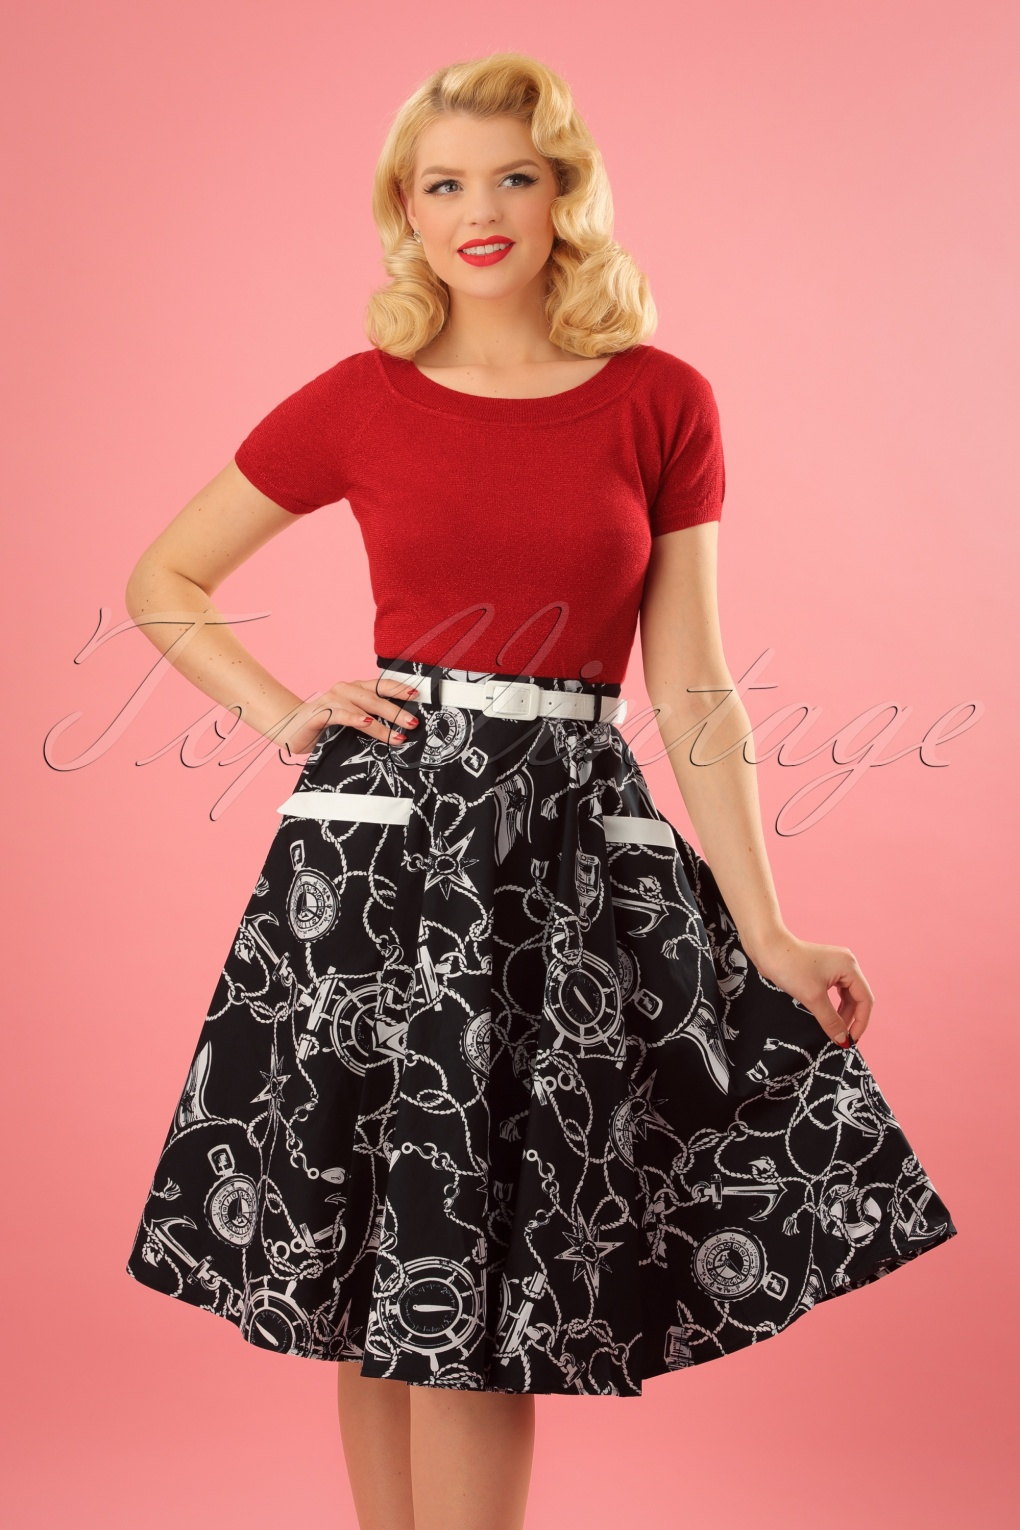 1930s Jewelry Styles and Trends 50s Mistral Swing Skirt in Black and White £35.54 AT vintagedancer.com